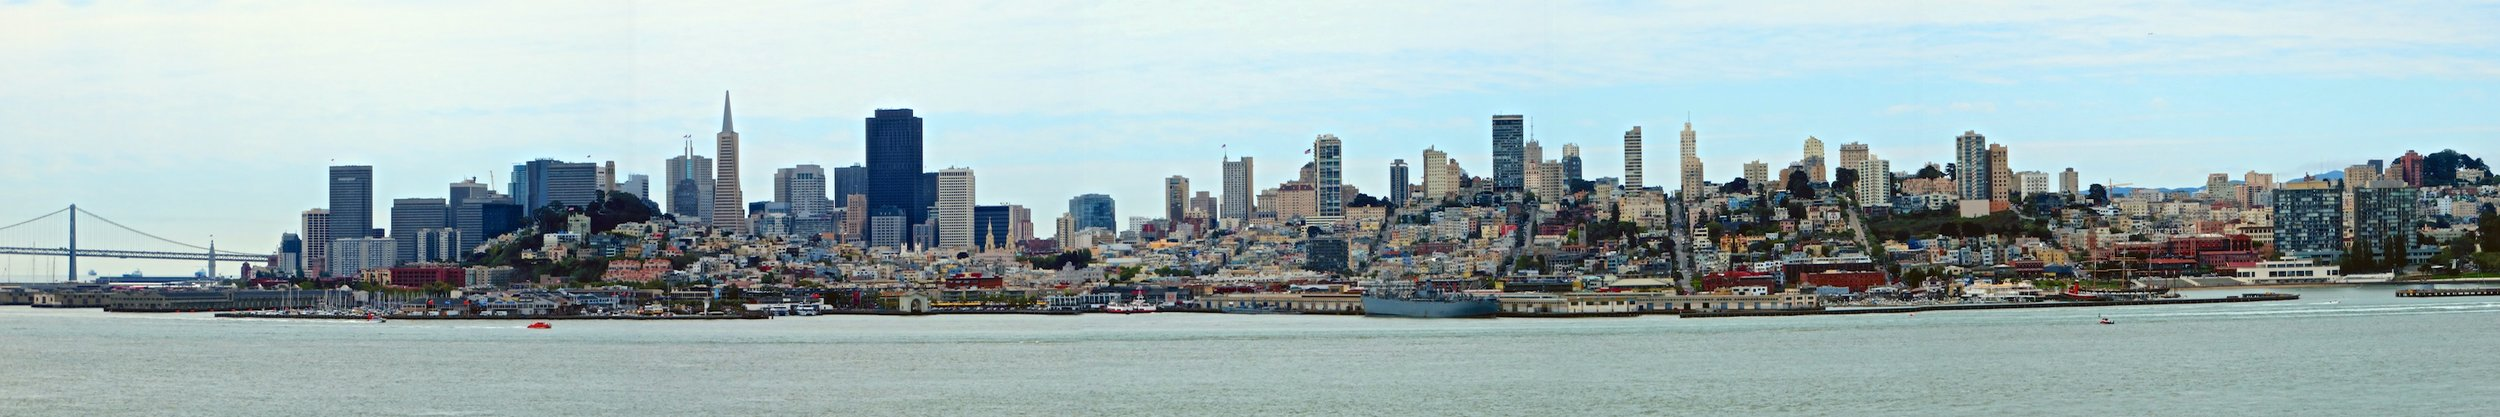 San-Francisco-panorama-from-Alcatraz.jpg